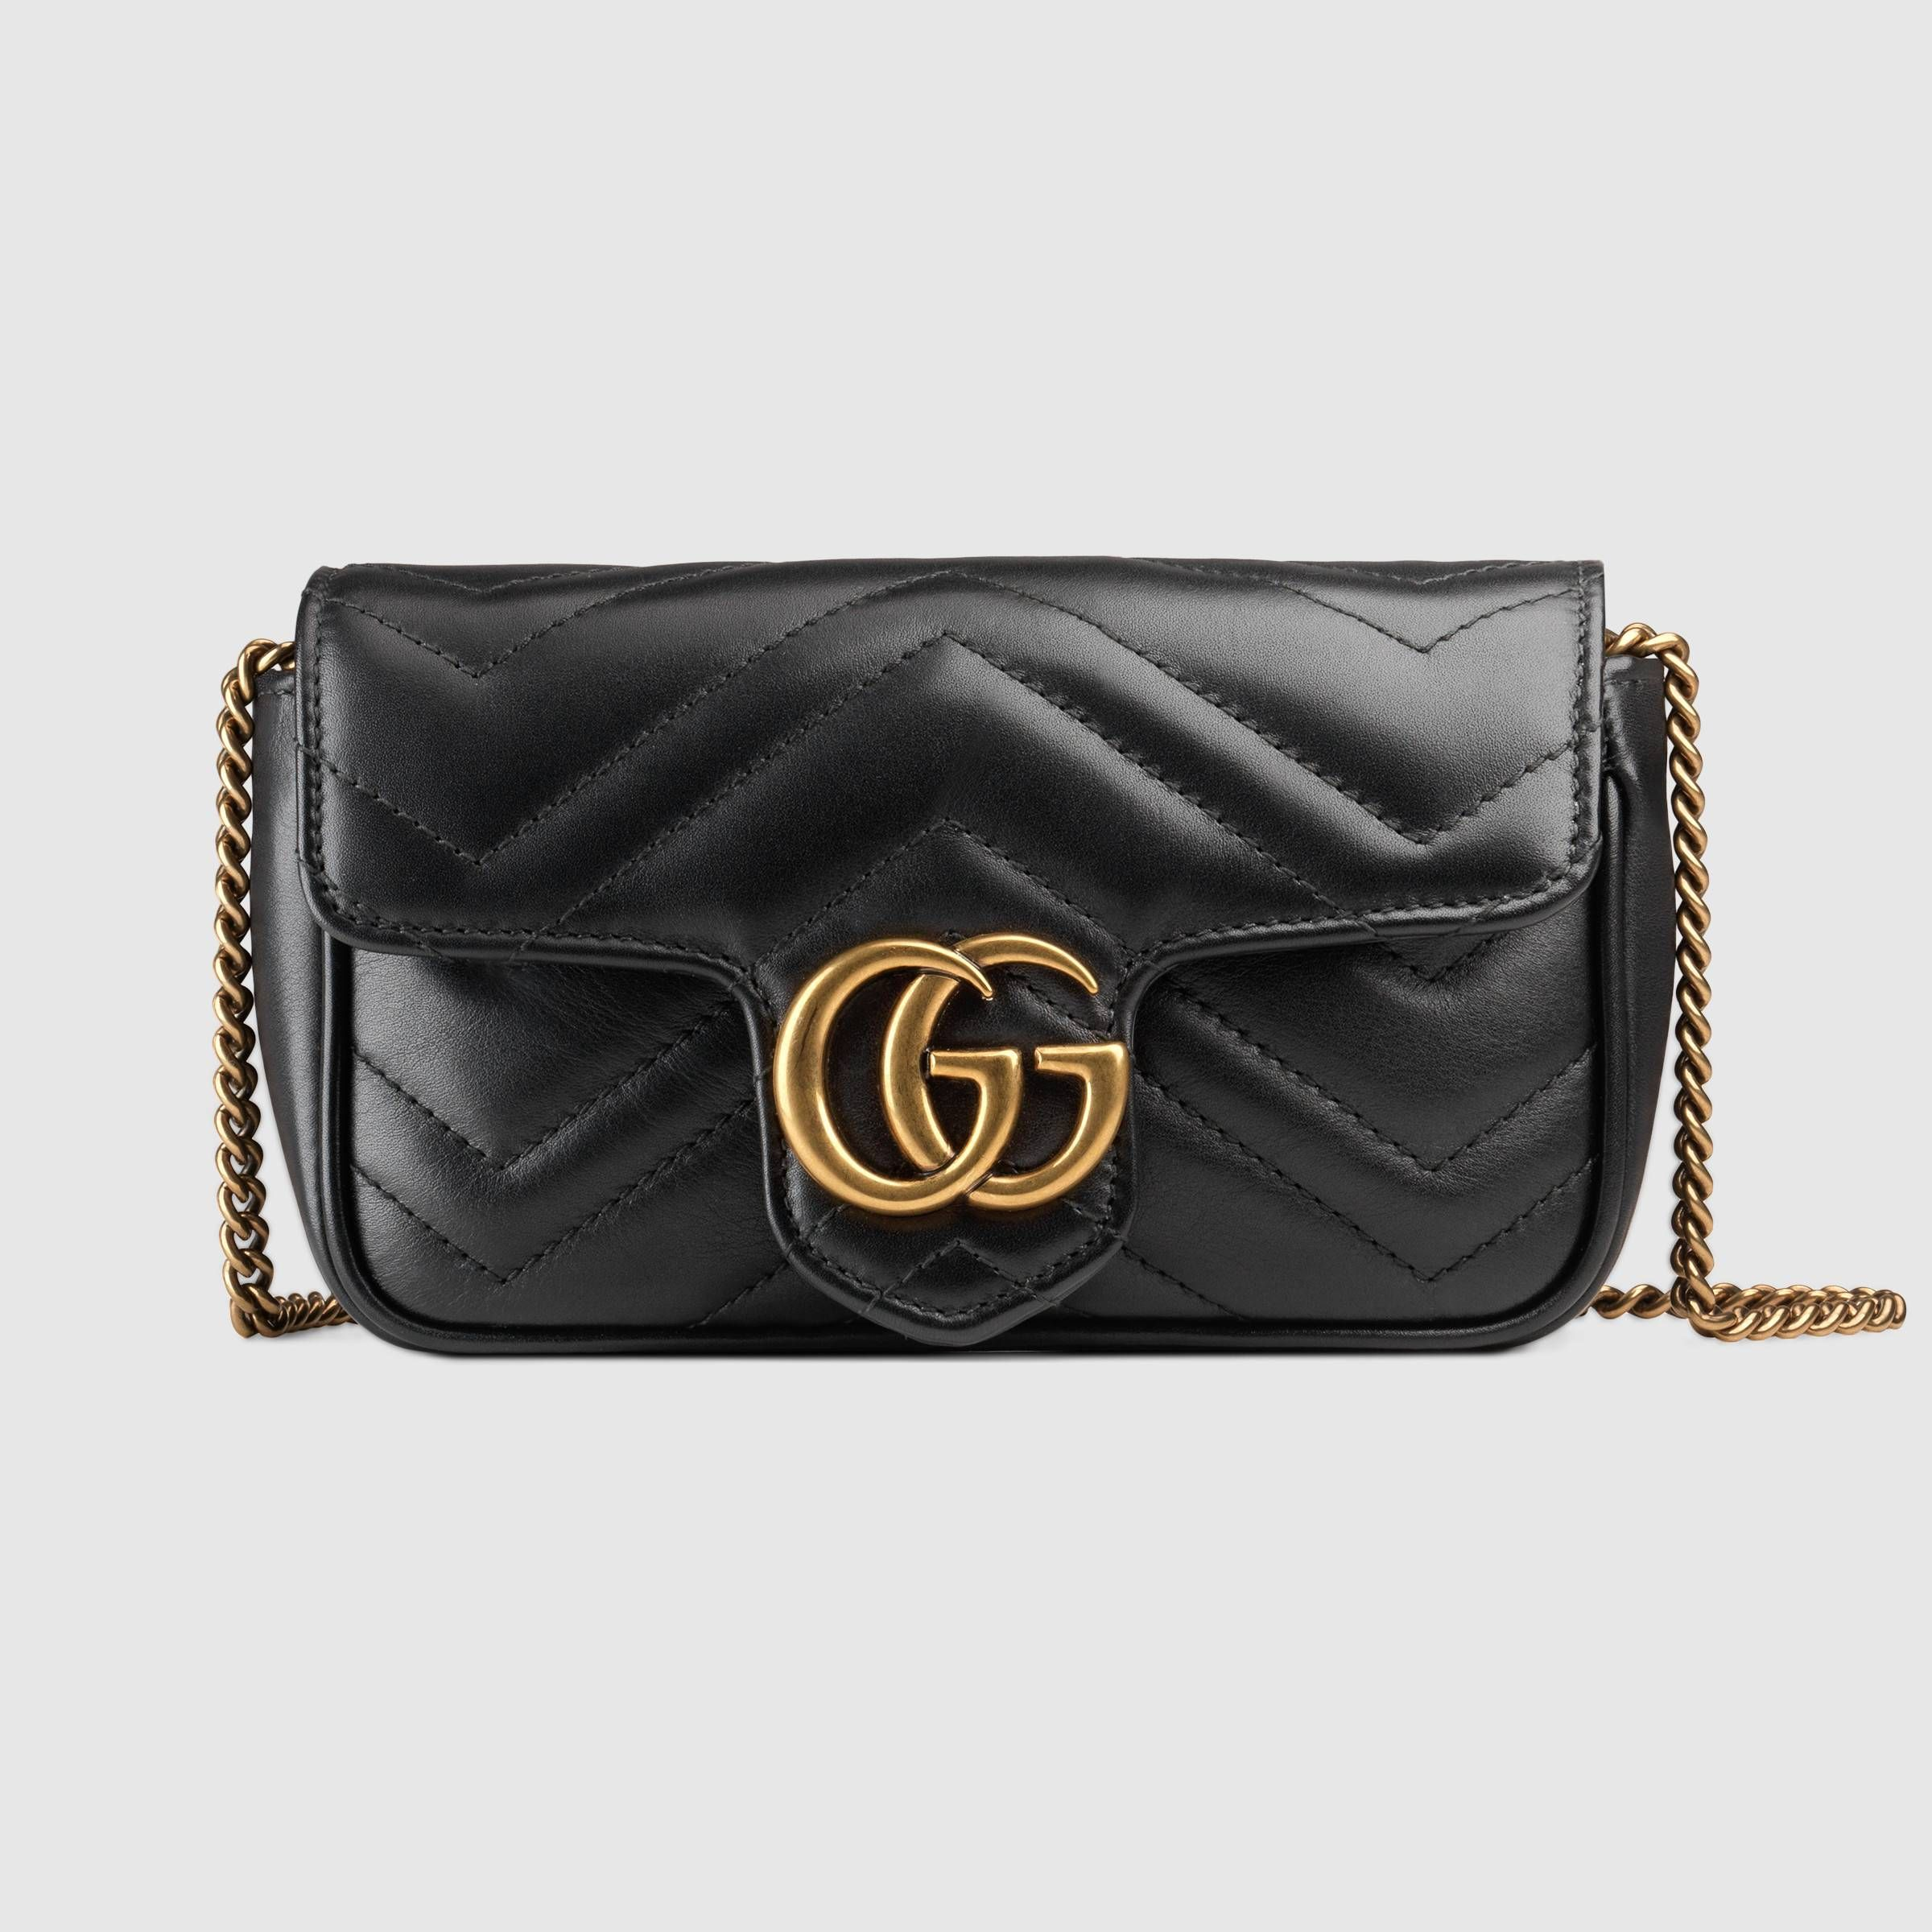 12e7acf34883 GG Marmont matelassé leather super mini bag - Gucci Women's Mini Bags  476433DSVRT1000